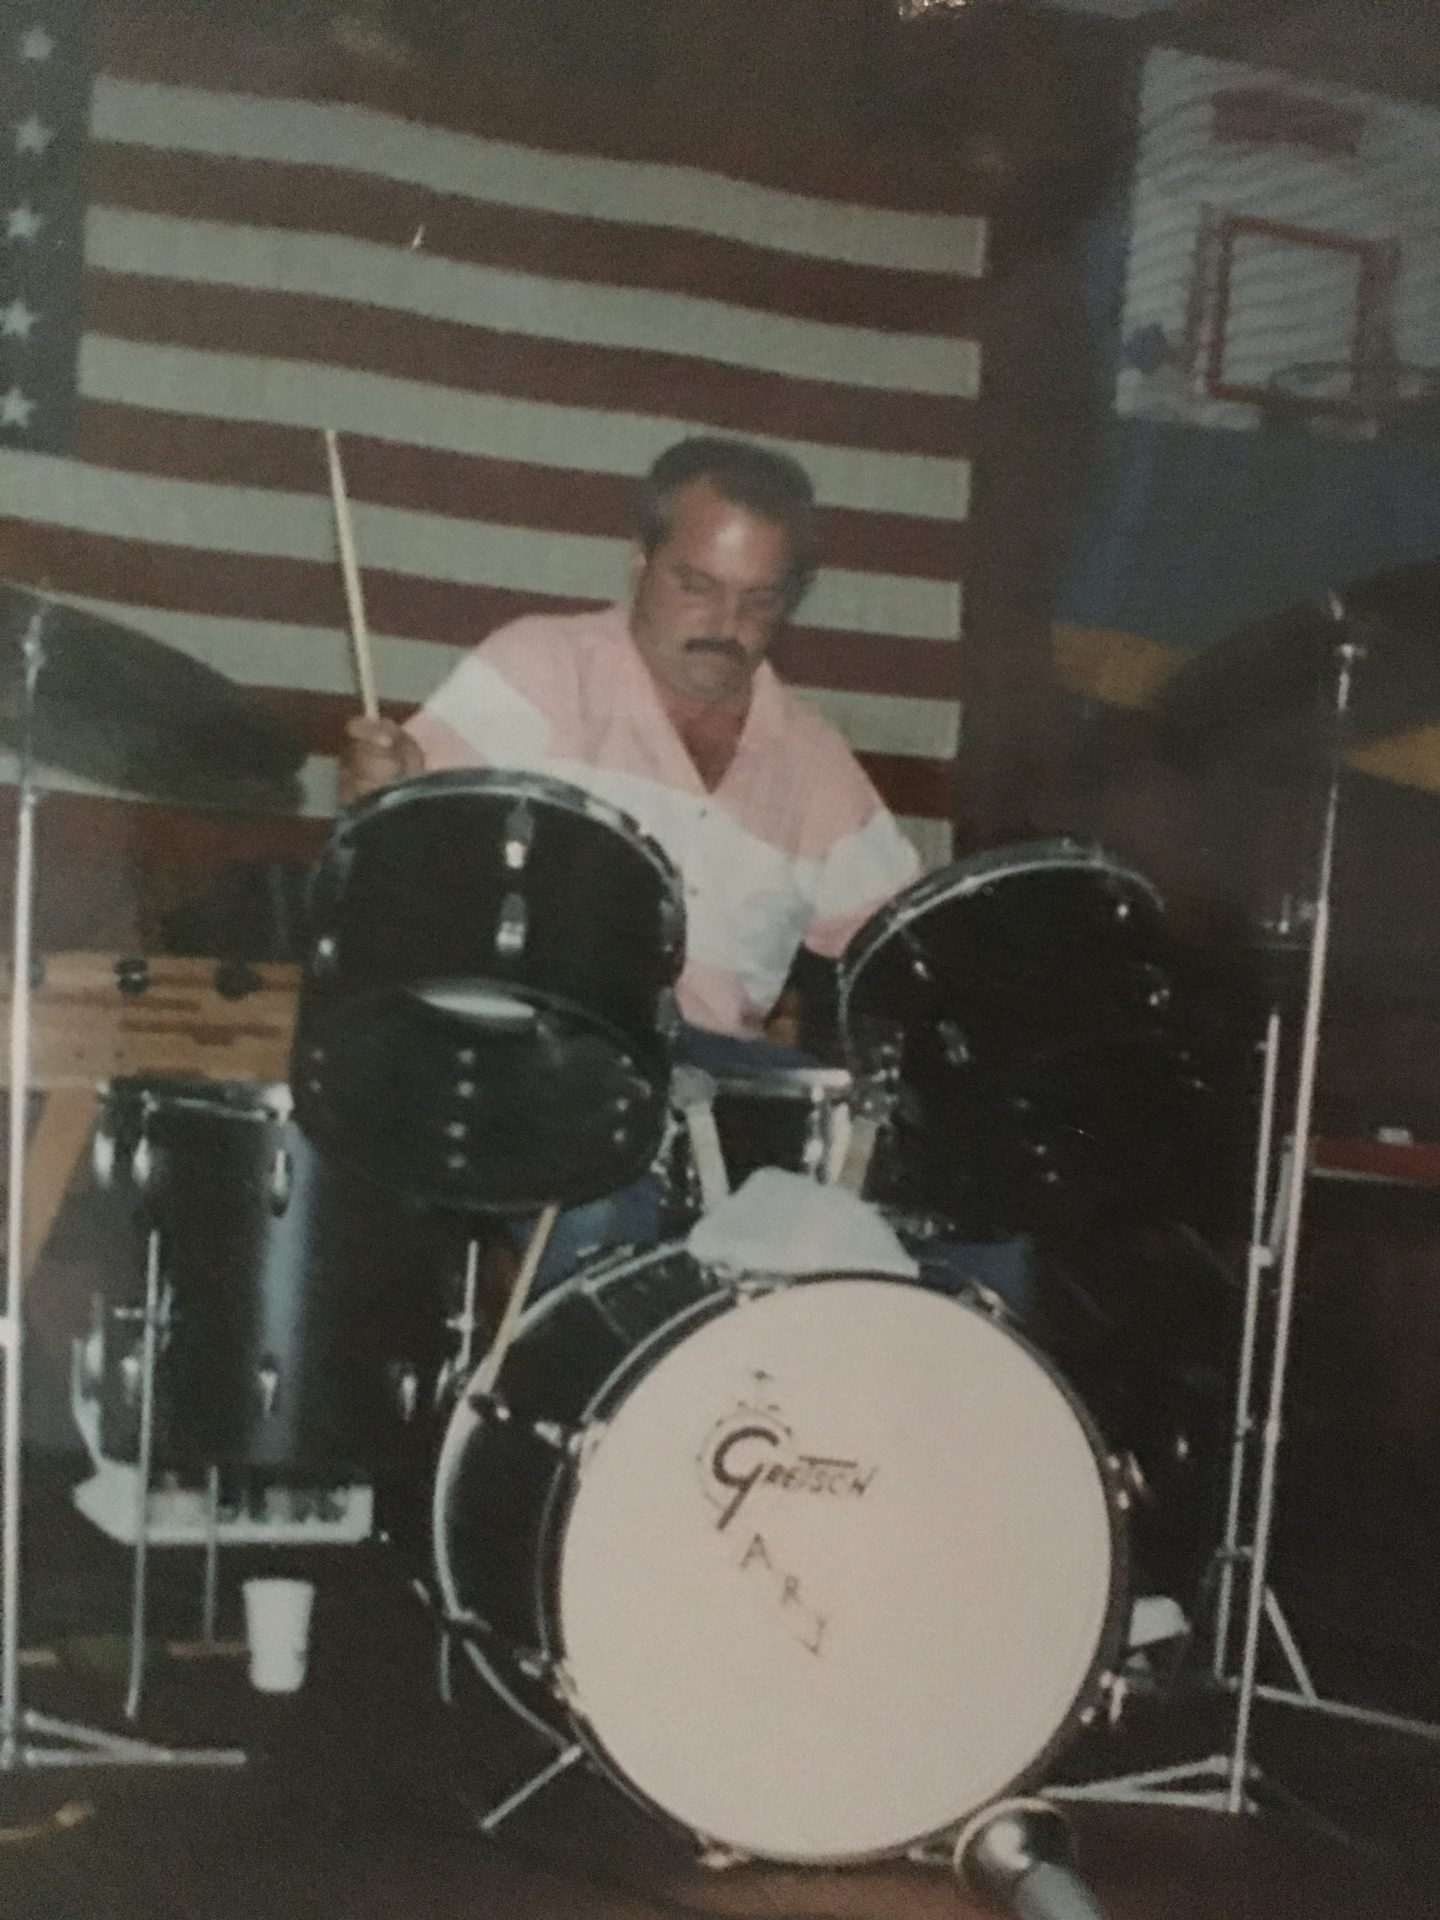 Playing the Drums